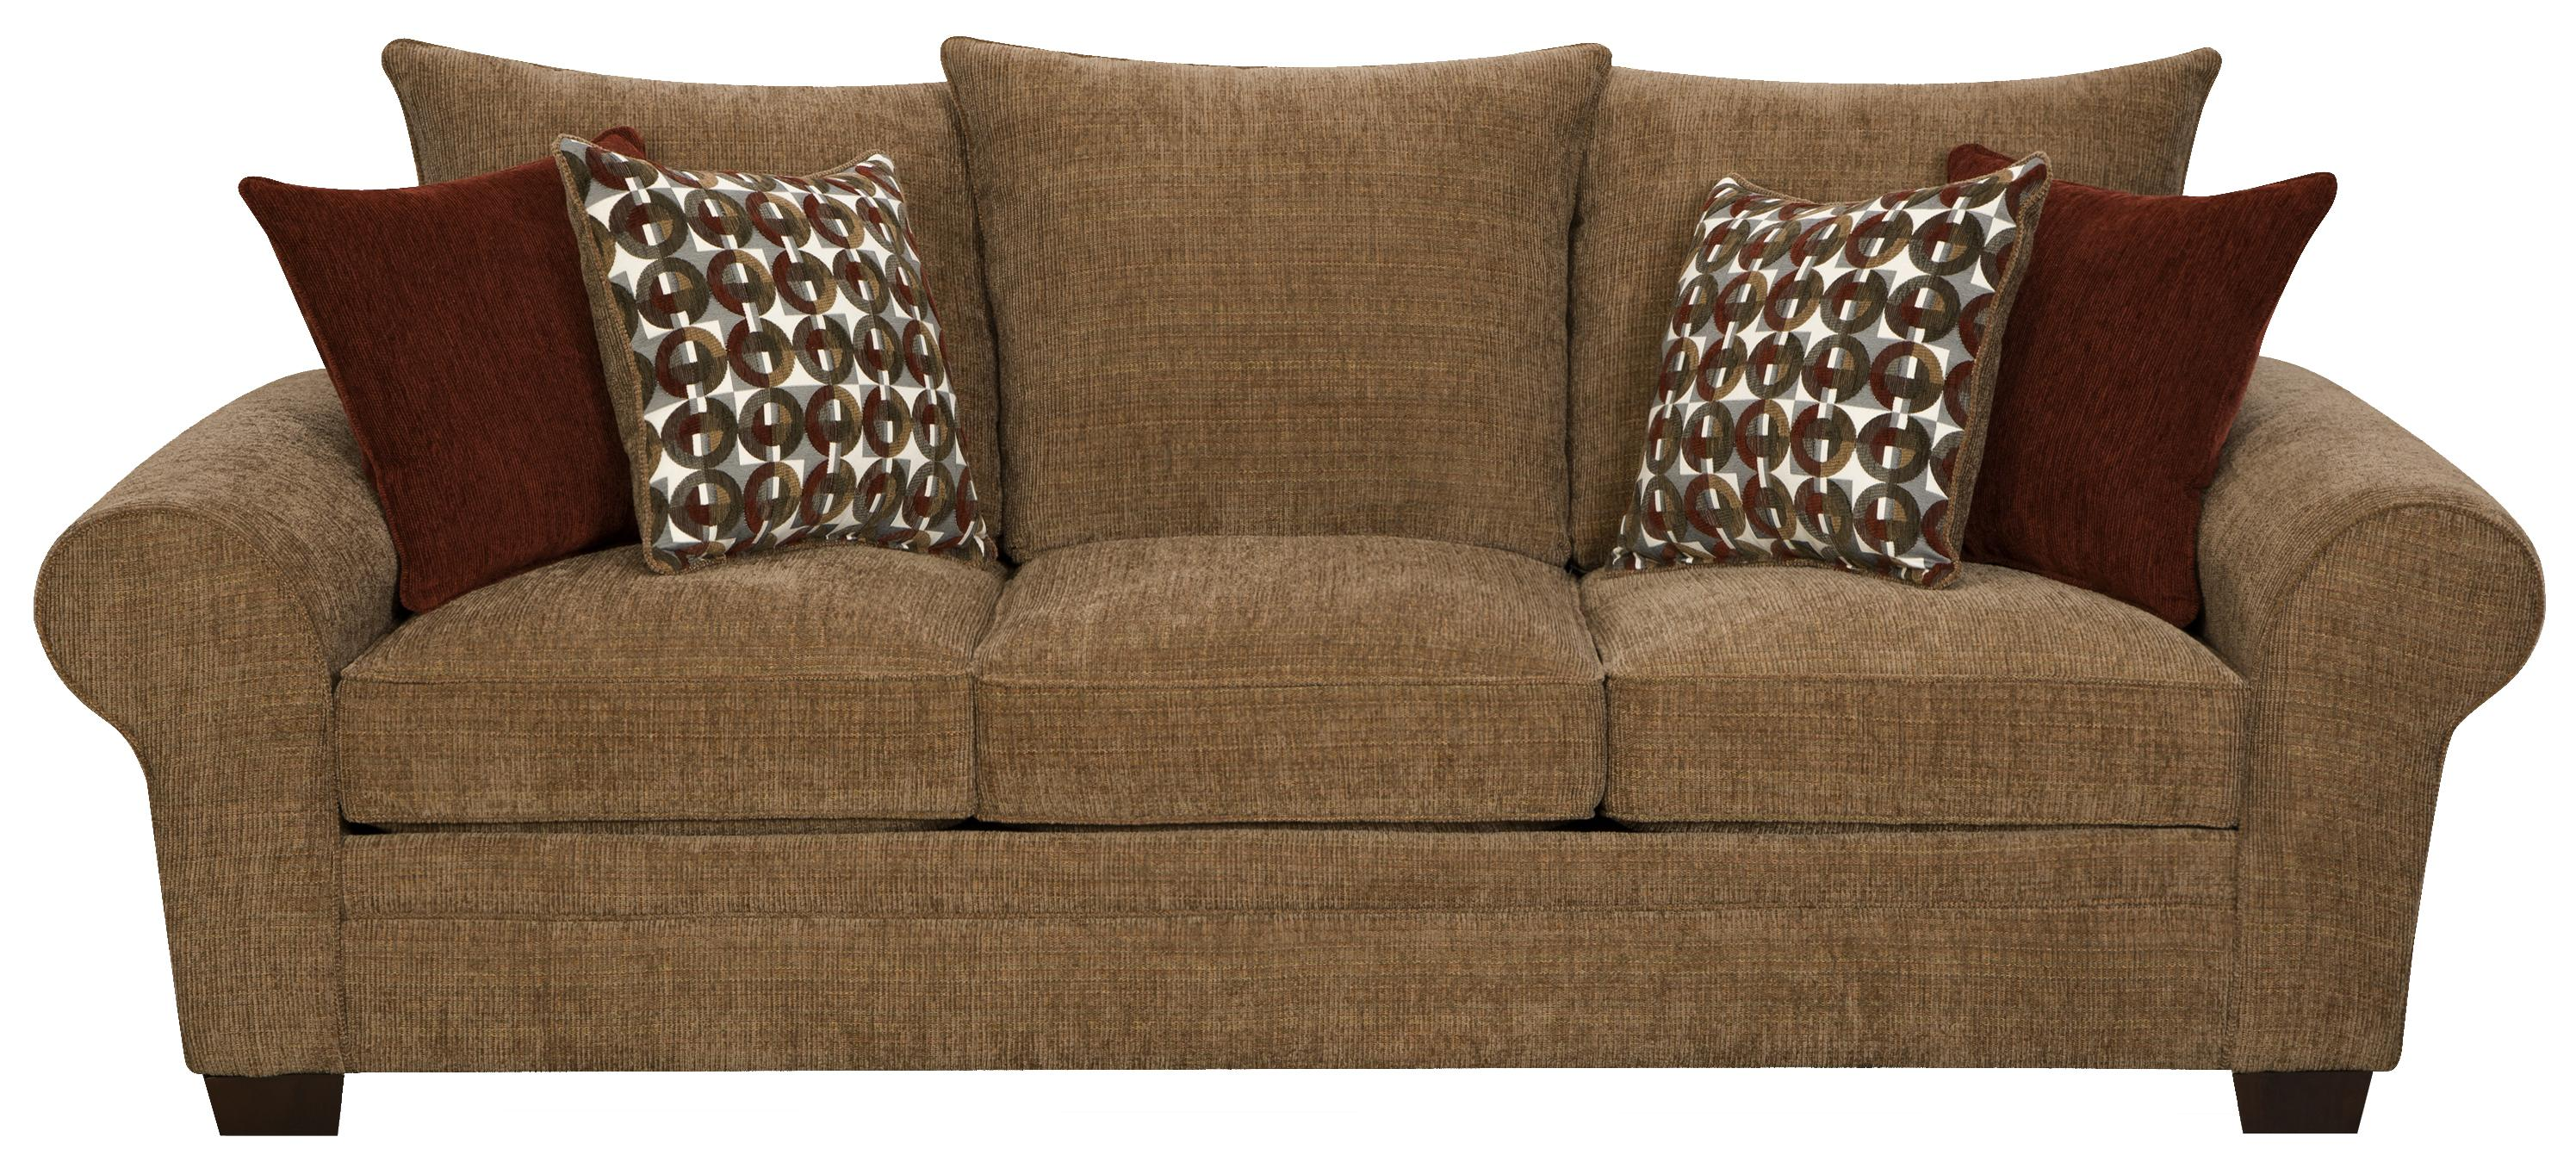 Elegant and casual living room sofa sleeper for family for Comfortable family sofa